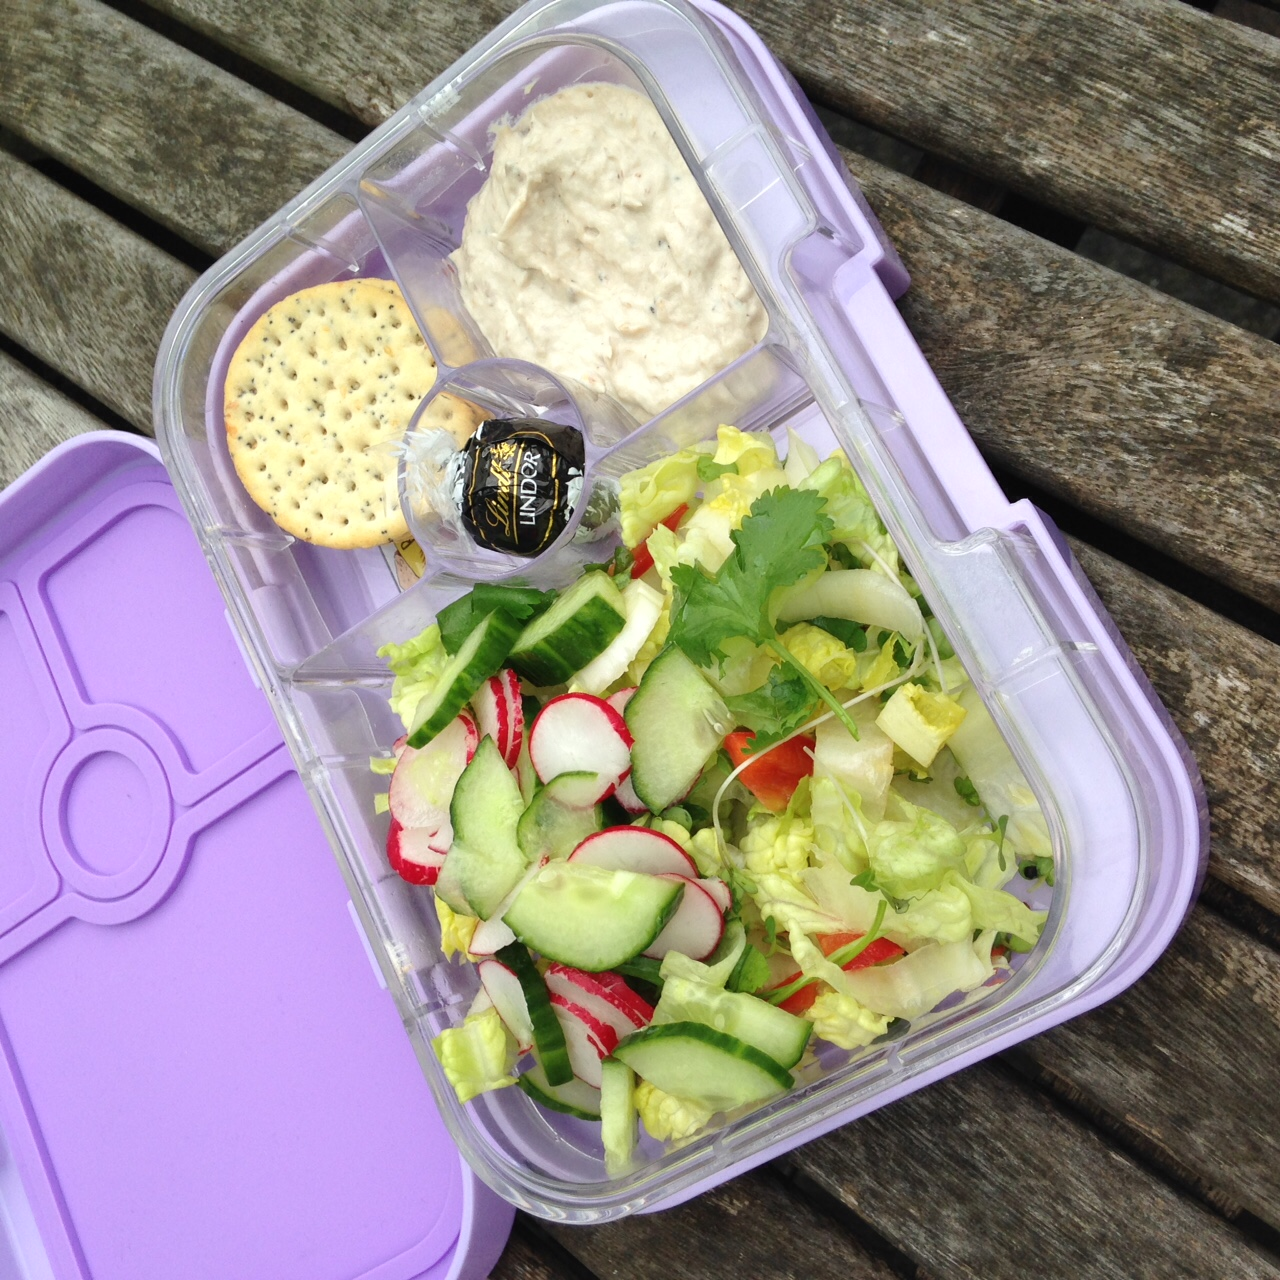 Homemade Mackerel Pate in the Lavande Purple Yumbox Panino